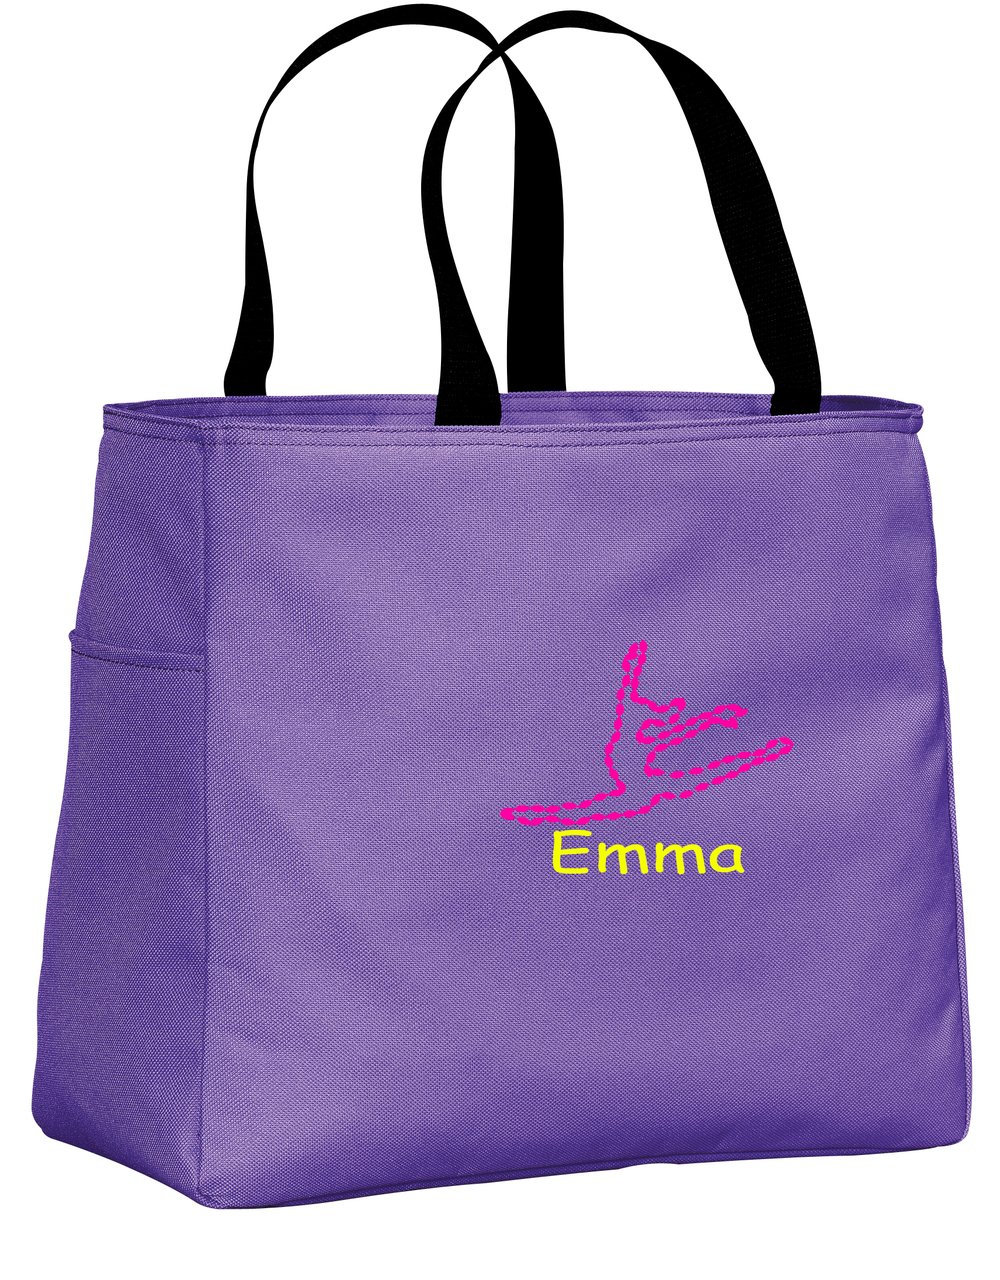 all about me company Personalized Embroidered Dance Sport Essential Tote Bag (Hyacinth) by all about me company